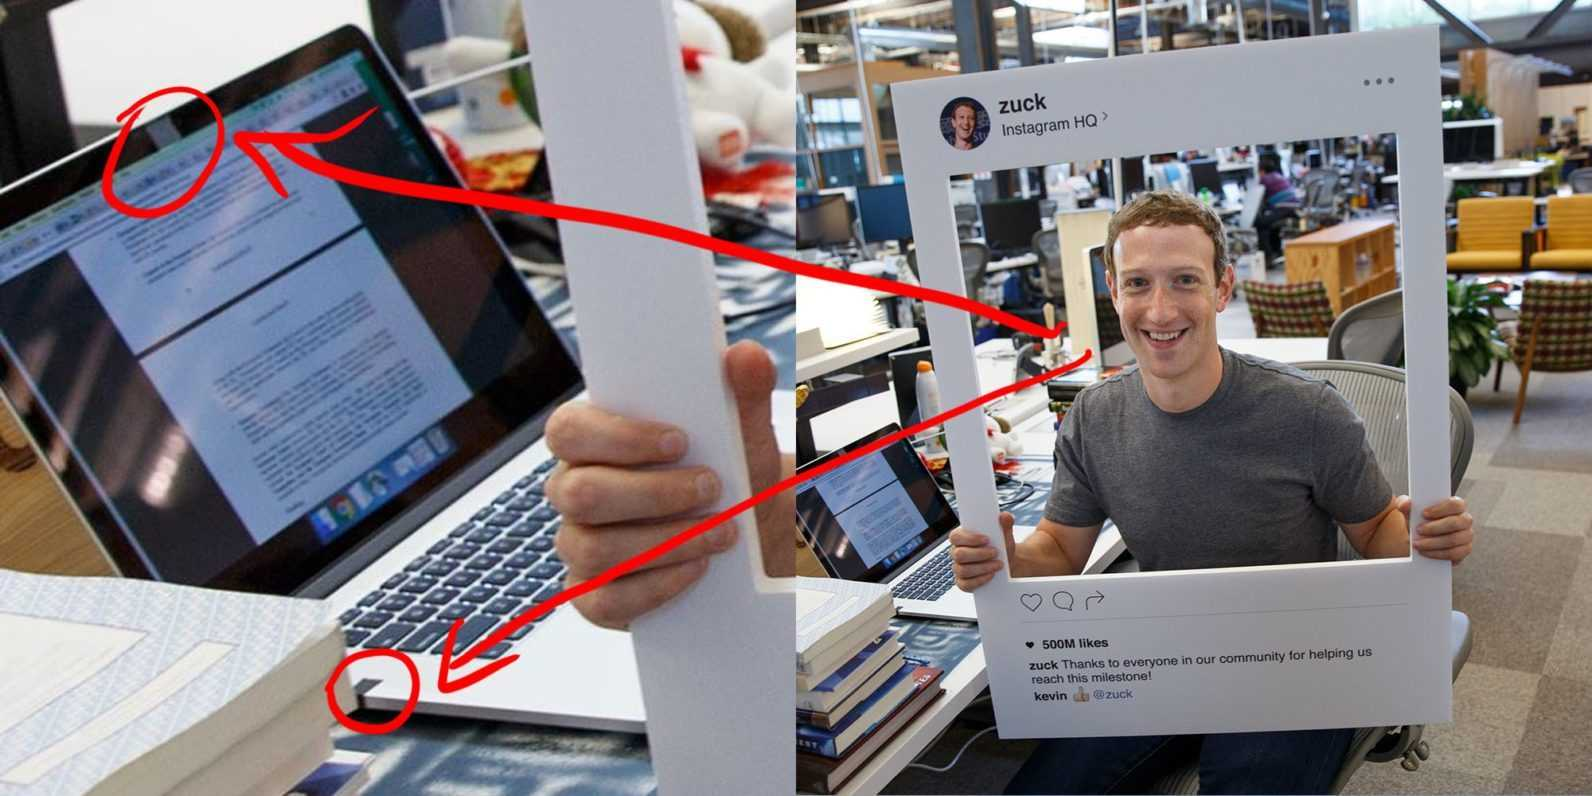 Mark Zuckerberg in a frame protecting his online privacy